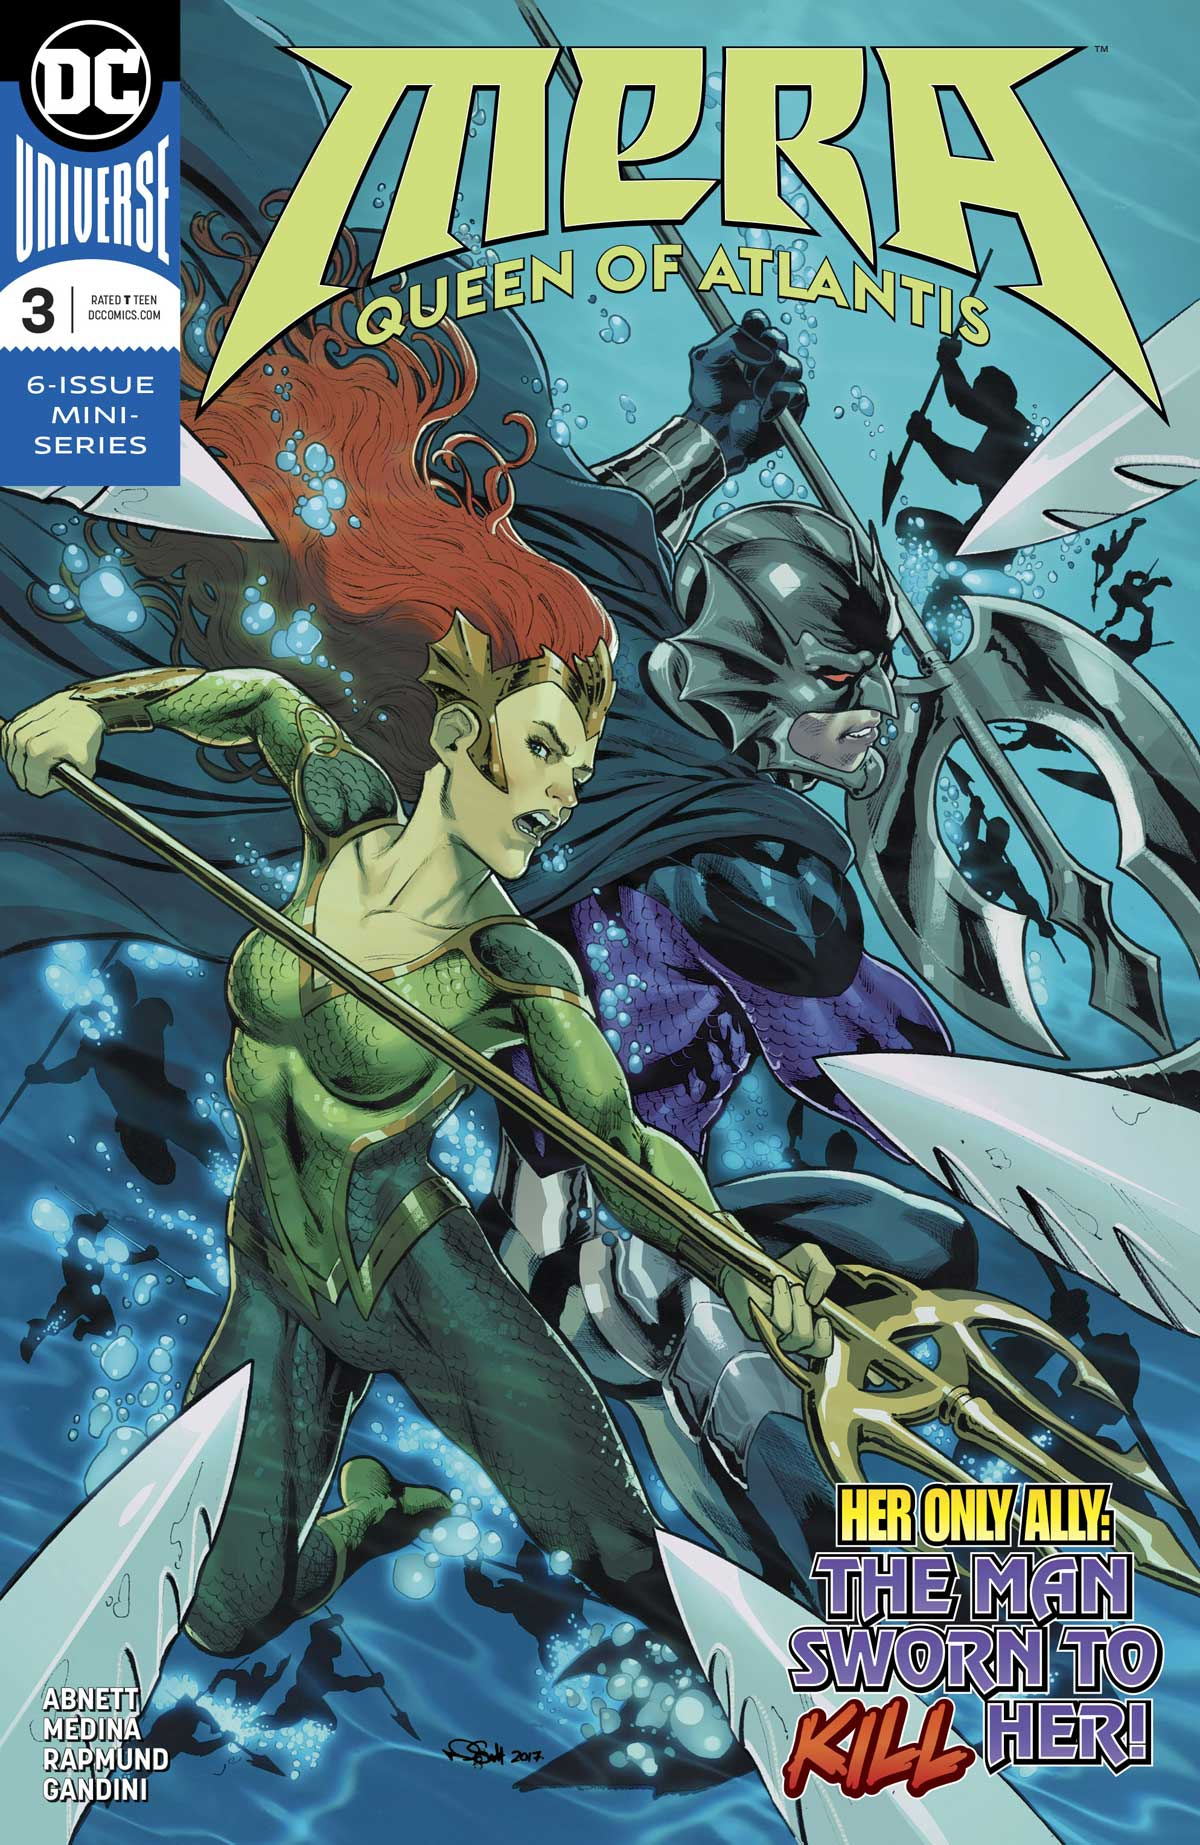 Mera Queen of Atlantis mini-series by Dan Abnett, Lan Medina and Richard Friend